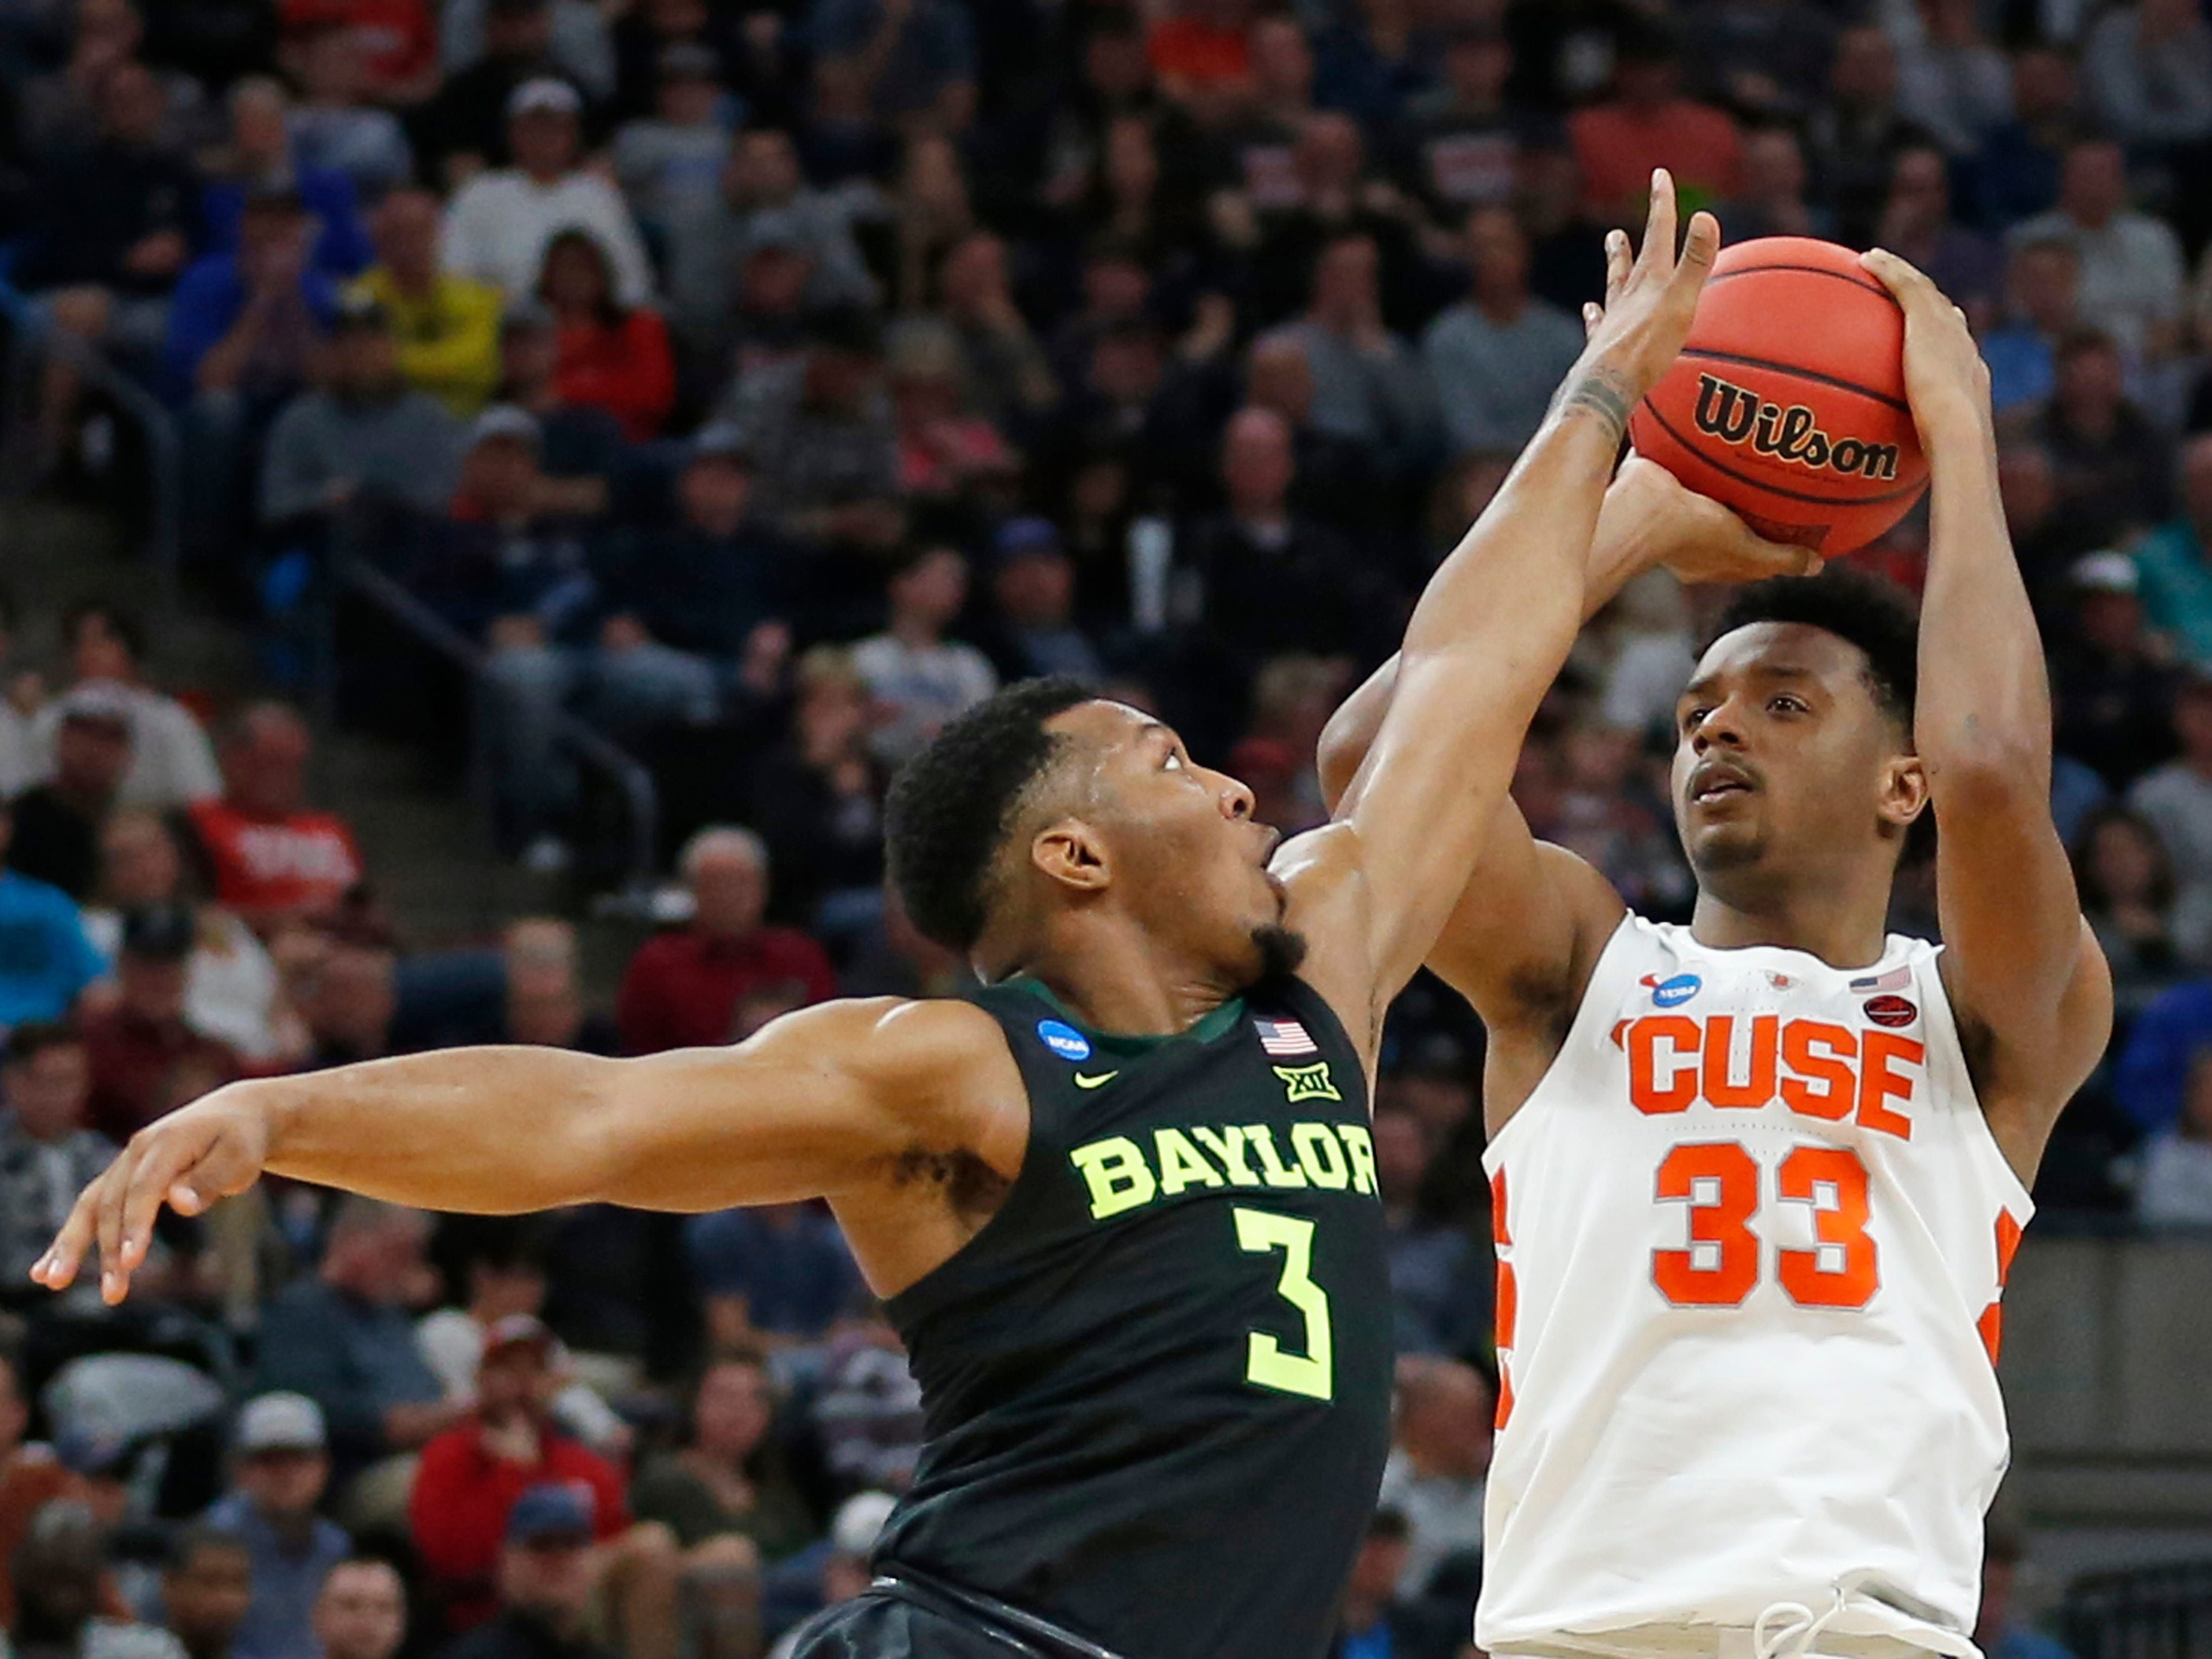 Syracuse forward Elijah Hughes (33) shoots as Baylor guard King McClure (3) defends during the first half of Thursday night's NCAA Tournament game in Salt Lake City. Hughes scored 18 points in the first half.